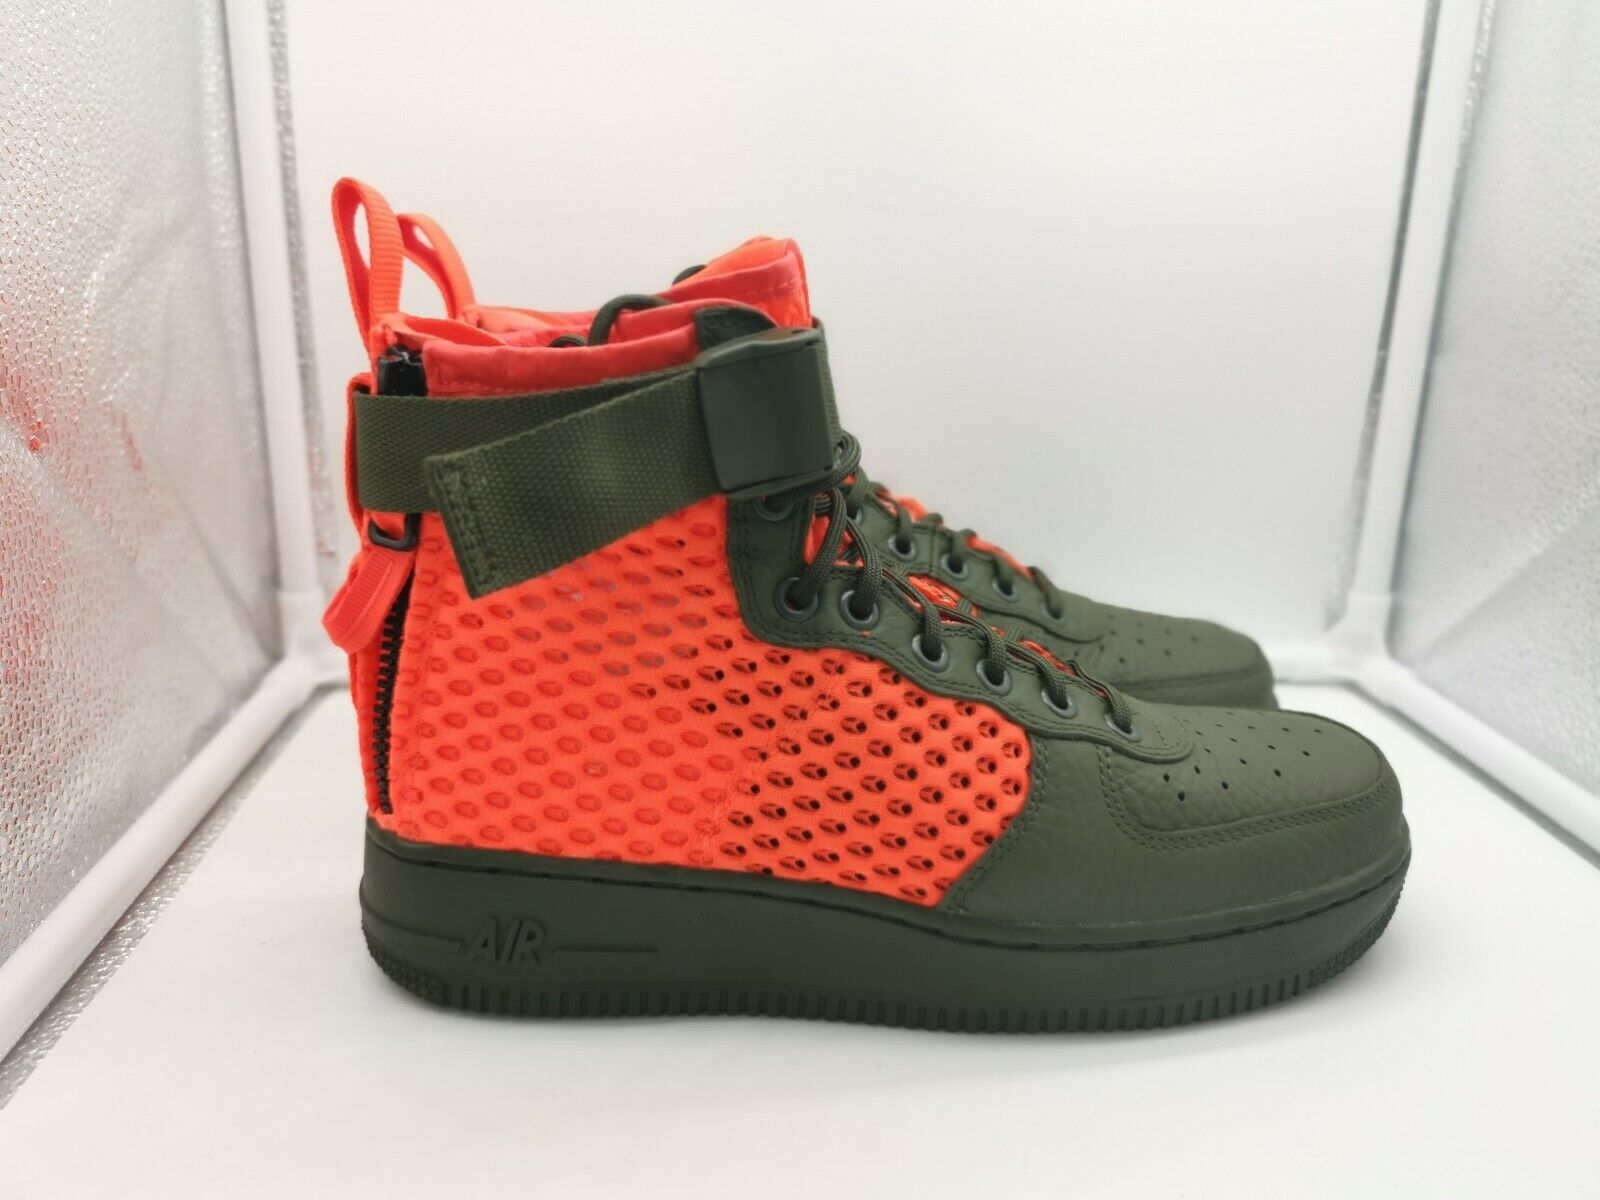 Nike Special Force Air Force 1 Mid QS UK 6 Cargo Khaki Total Crimson AA7345-300 Heißer verkauf